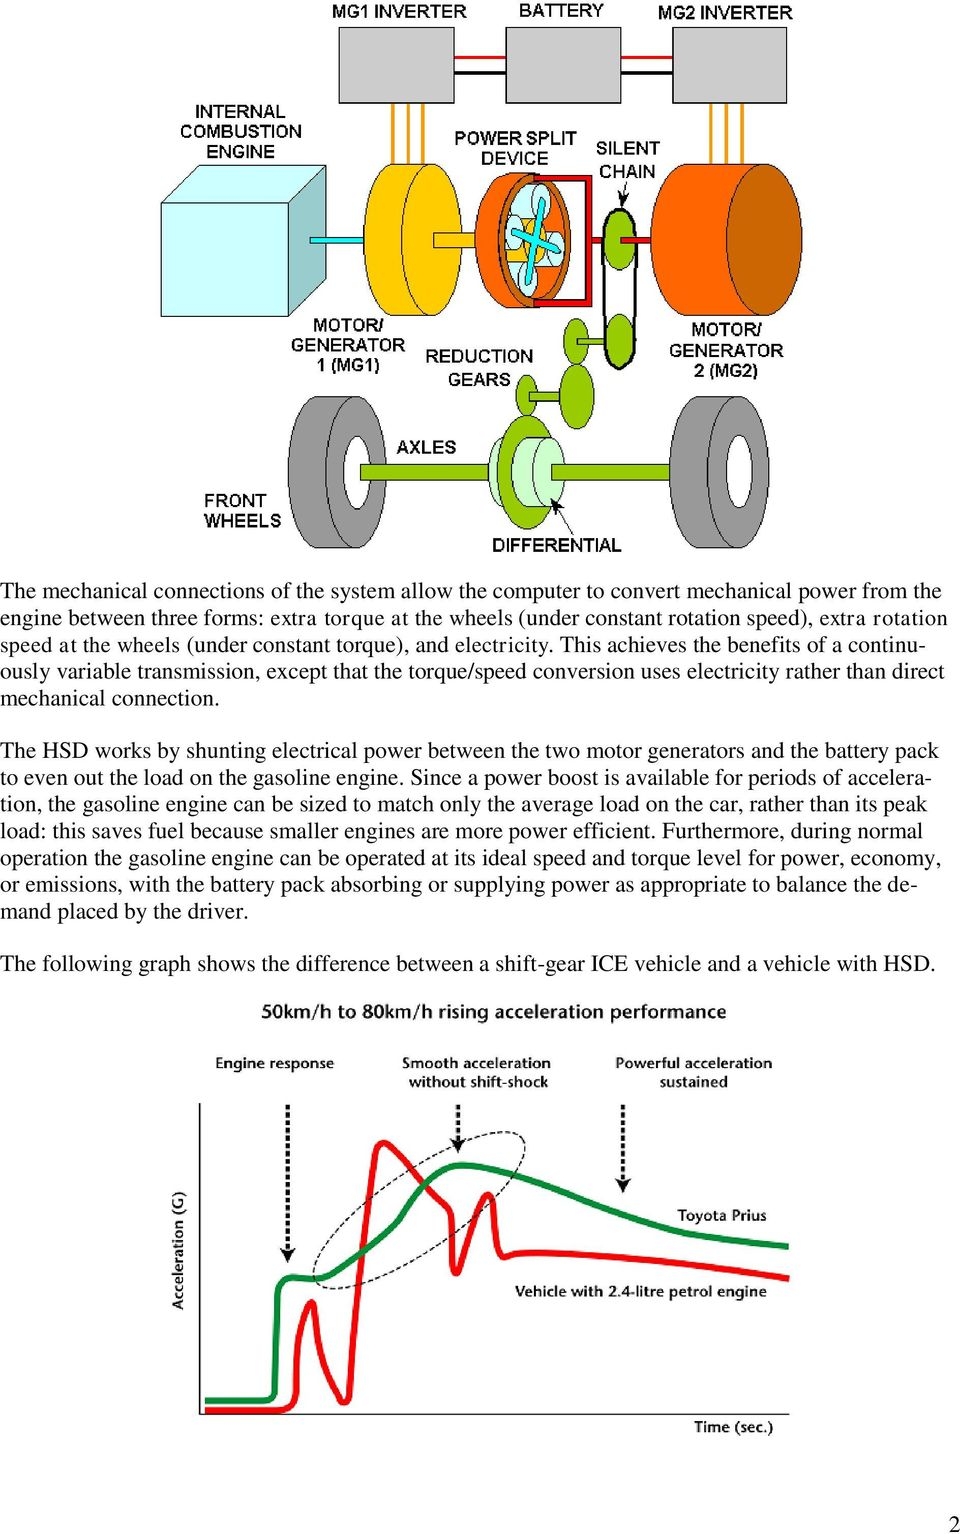 Case Study Toyota Hybrid Synergy Drive Pdf Combustion Engine Diagram For Idiots This Achieves The Benefits Of A Continuously Variable Transmission Except That Torque Speed